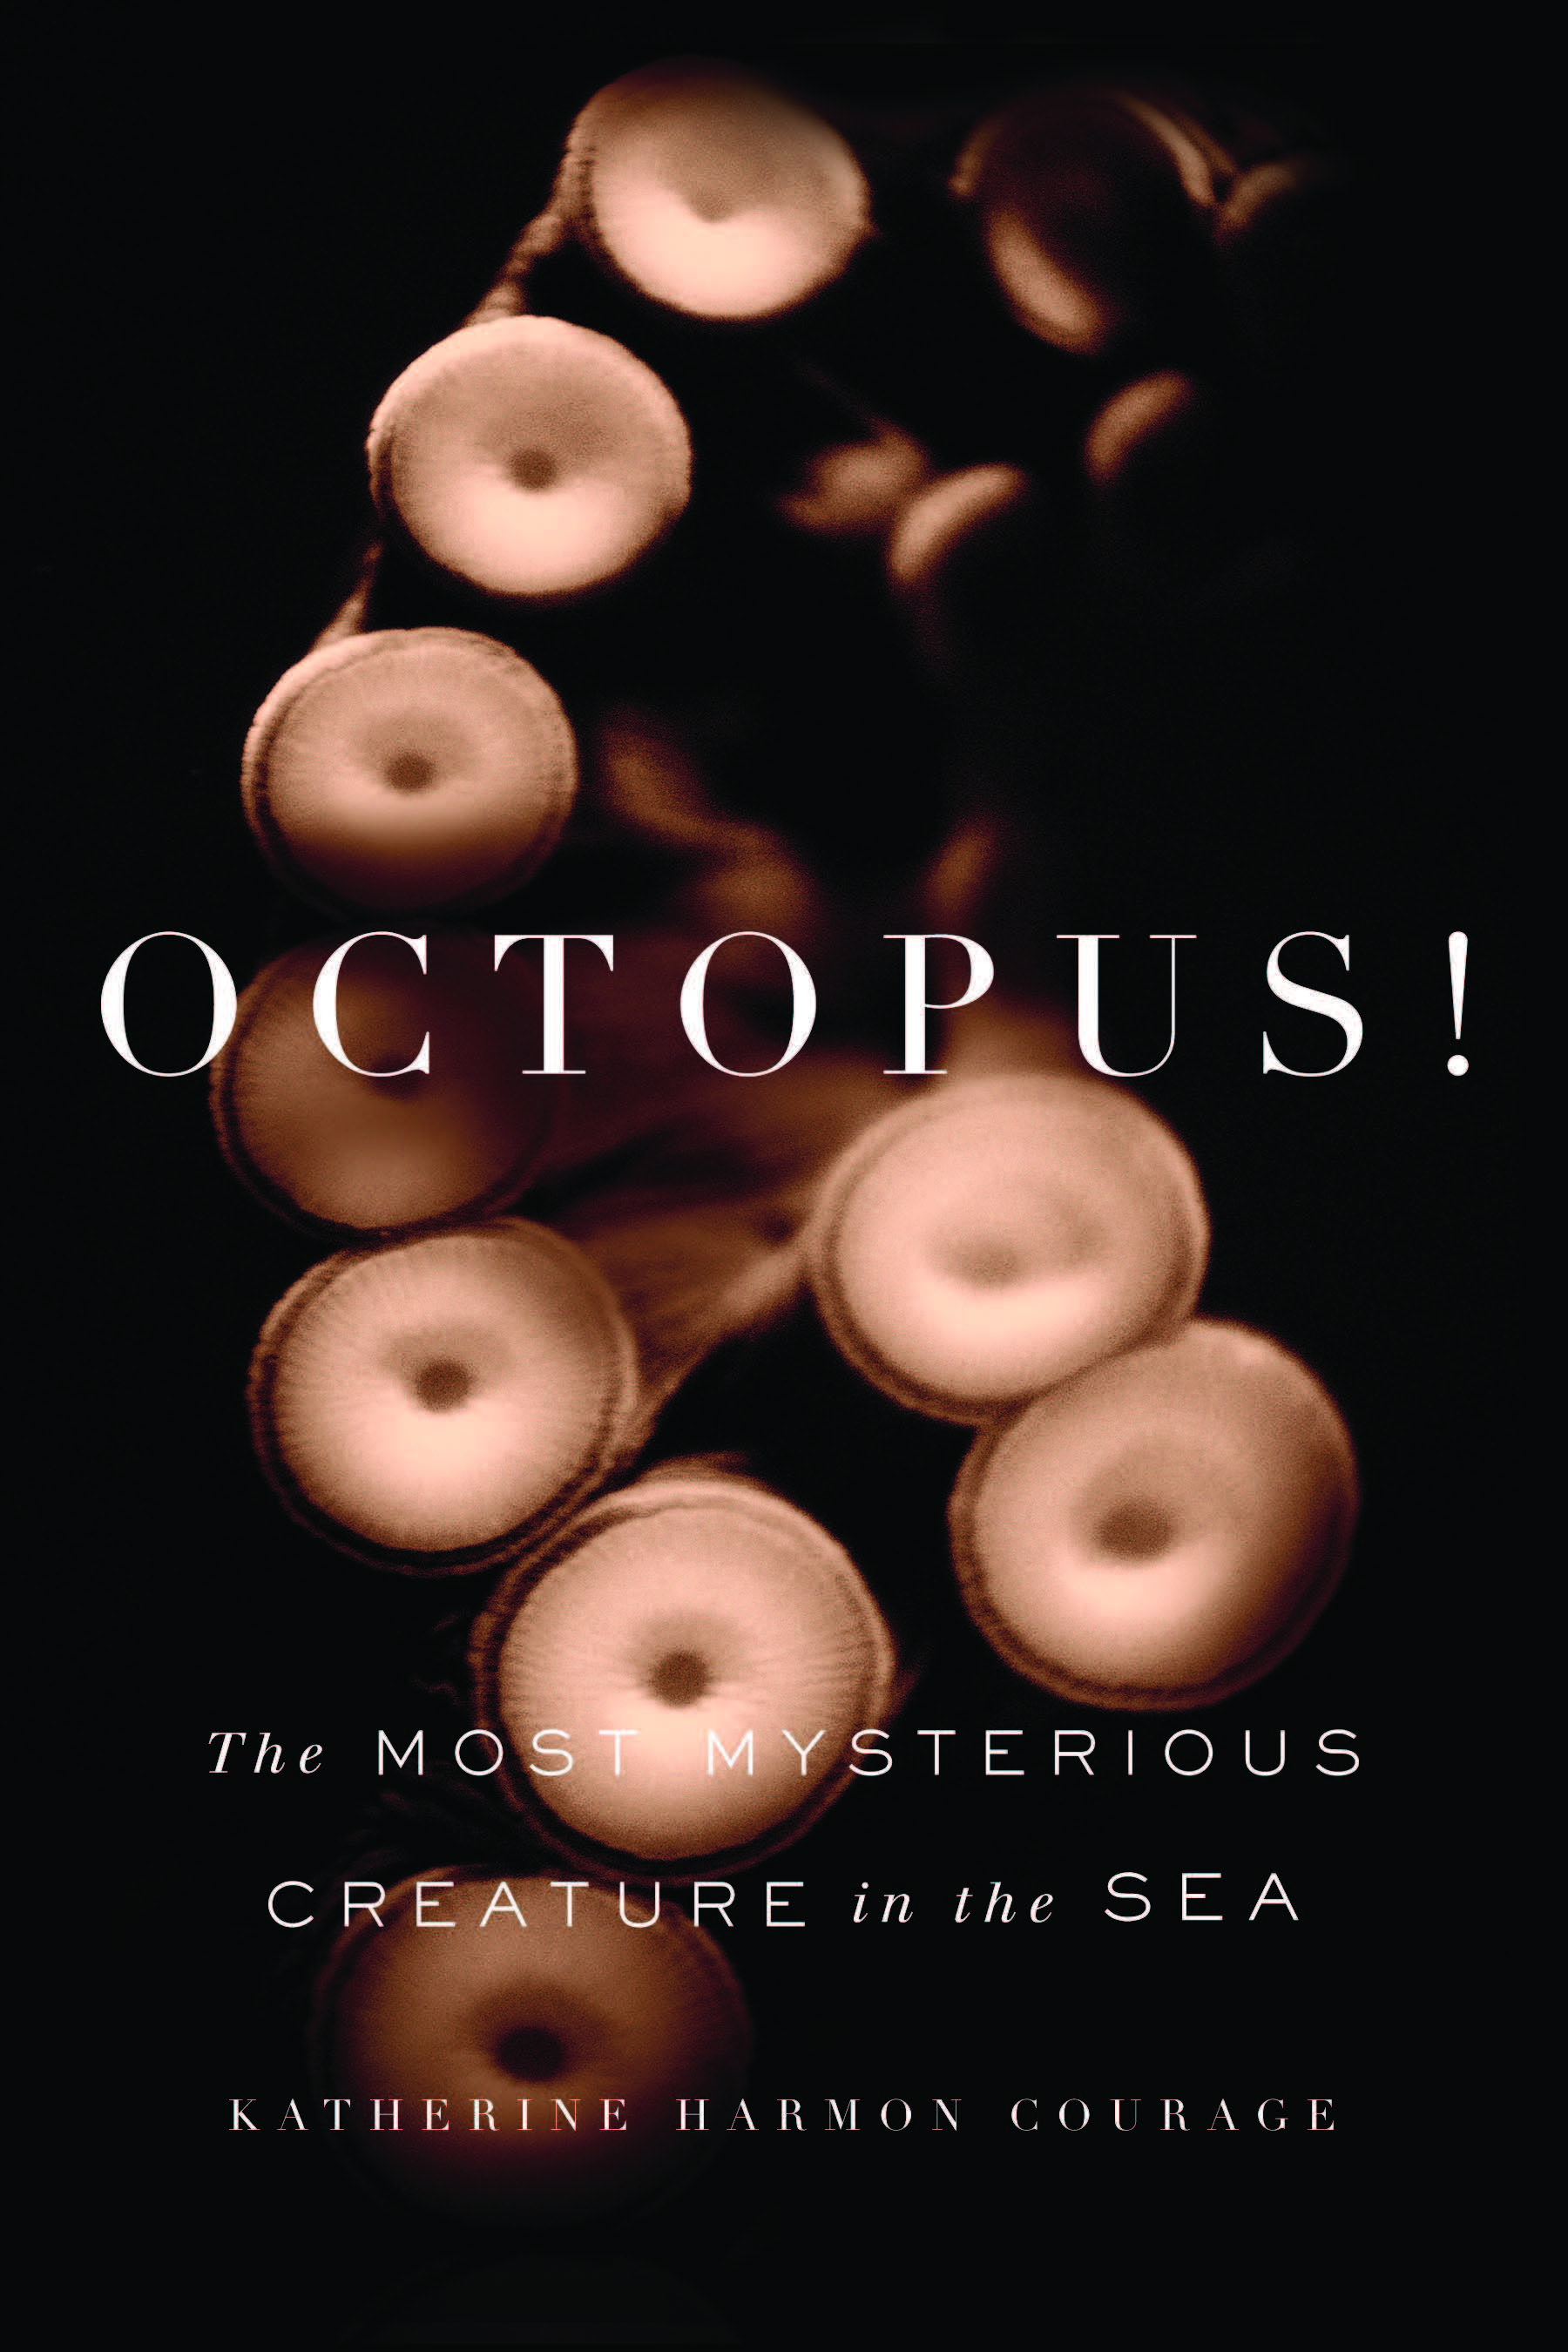 Ten Curious Facts About Octopuses Science Smithsonian Doing Your Own Electrical Work Is Dumb Dangerous And Illegal